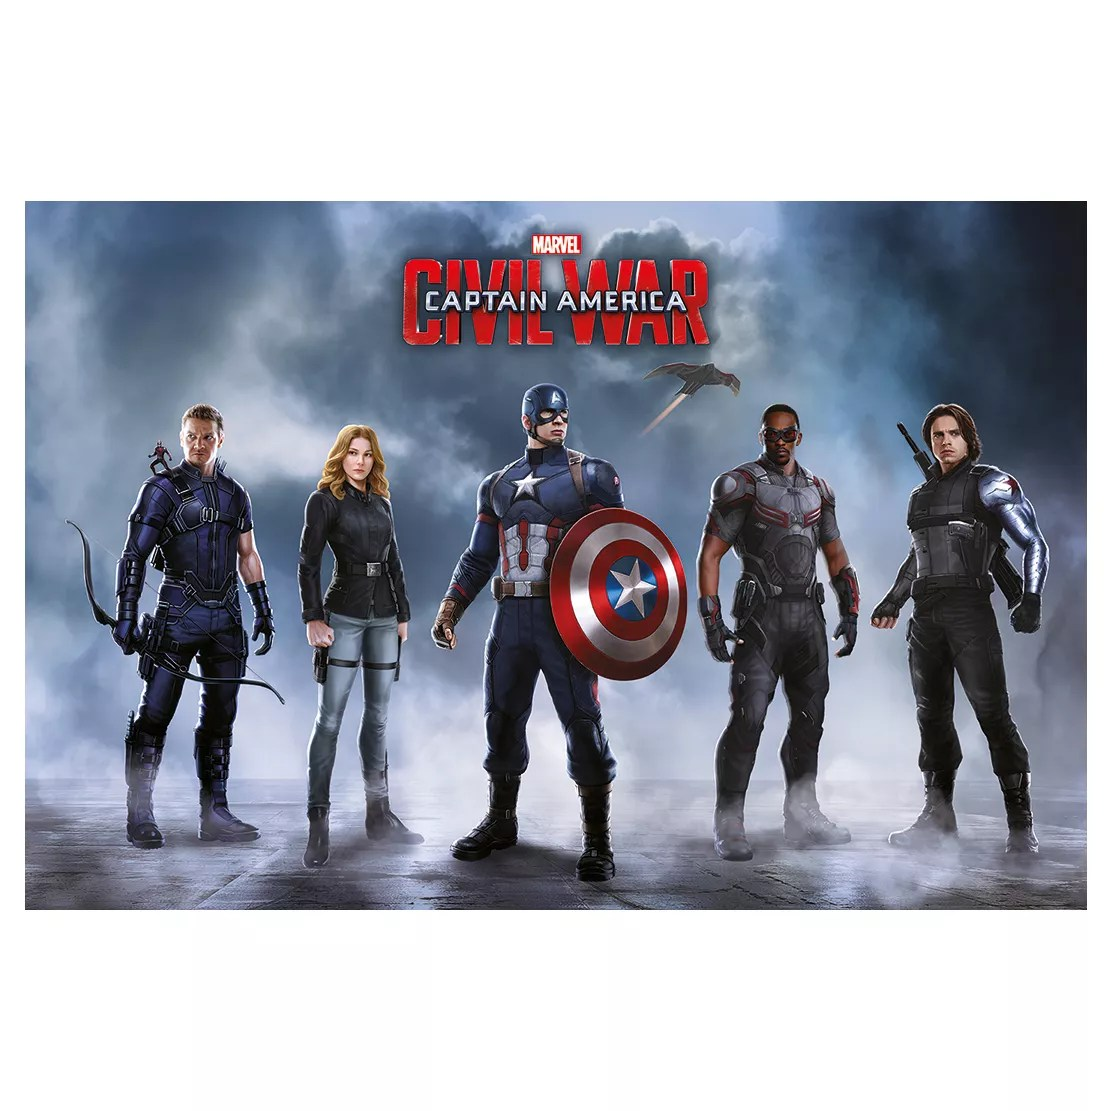 captain america table and chair set cast iron chairs adelaide civil war team multicolour poster w 610mm